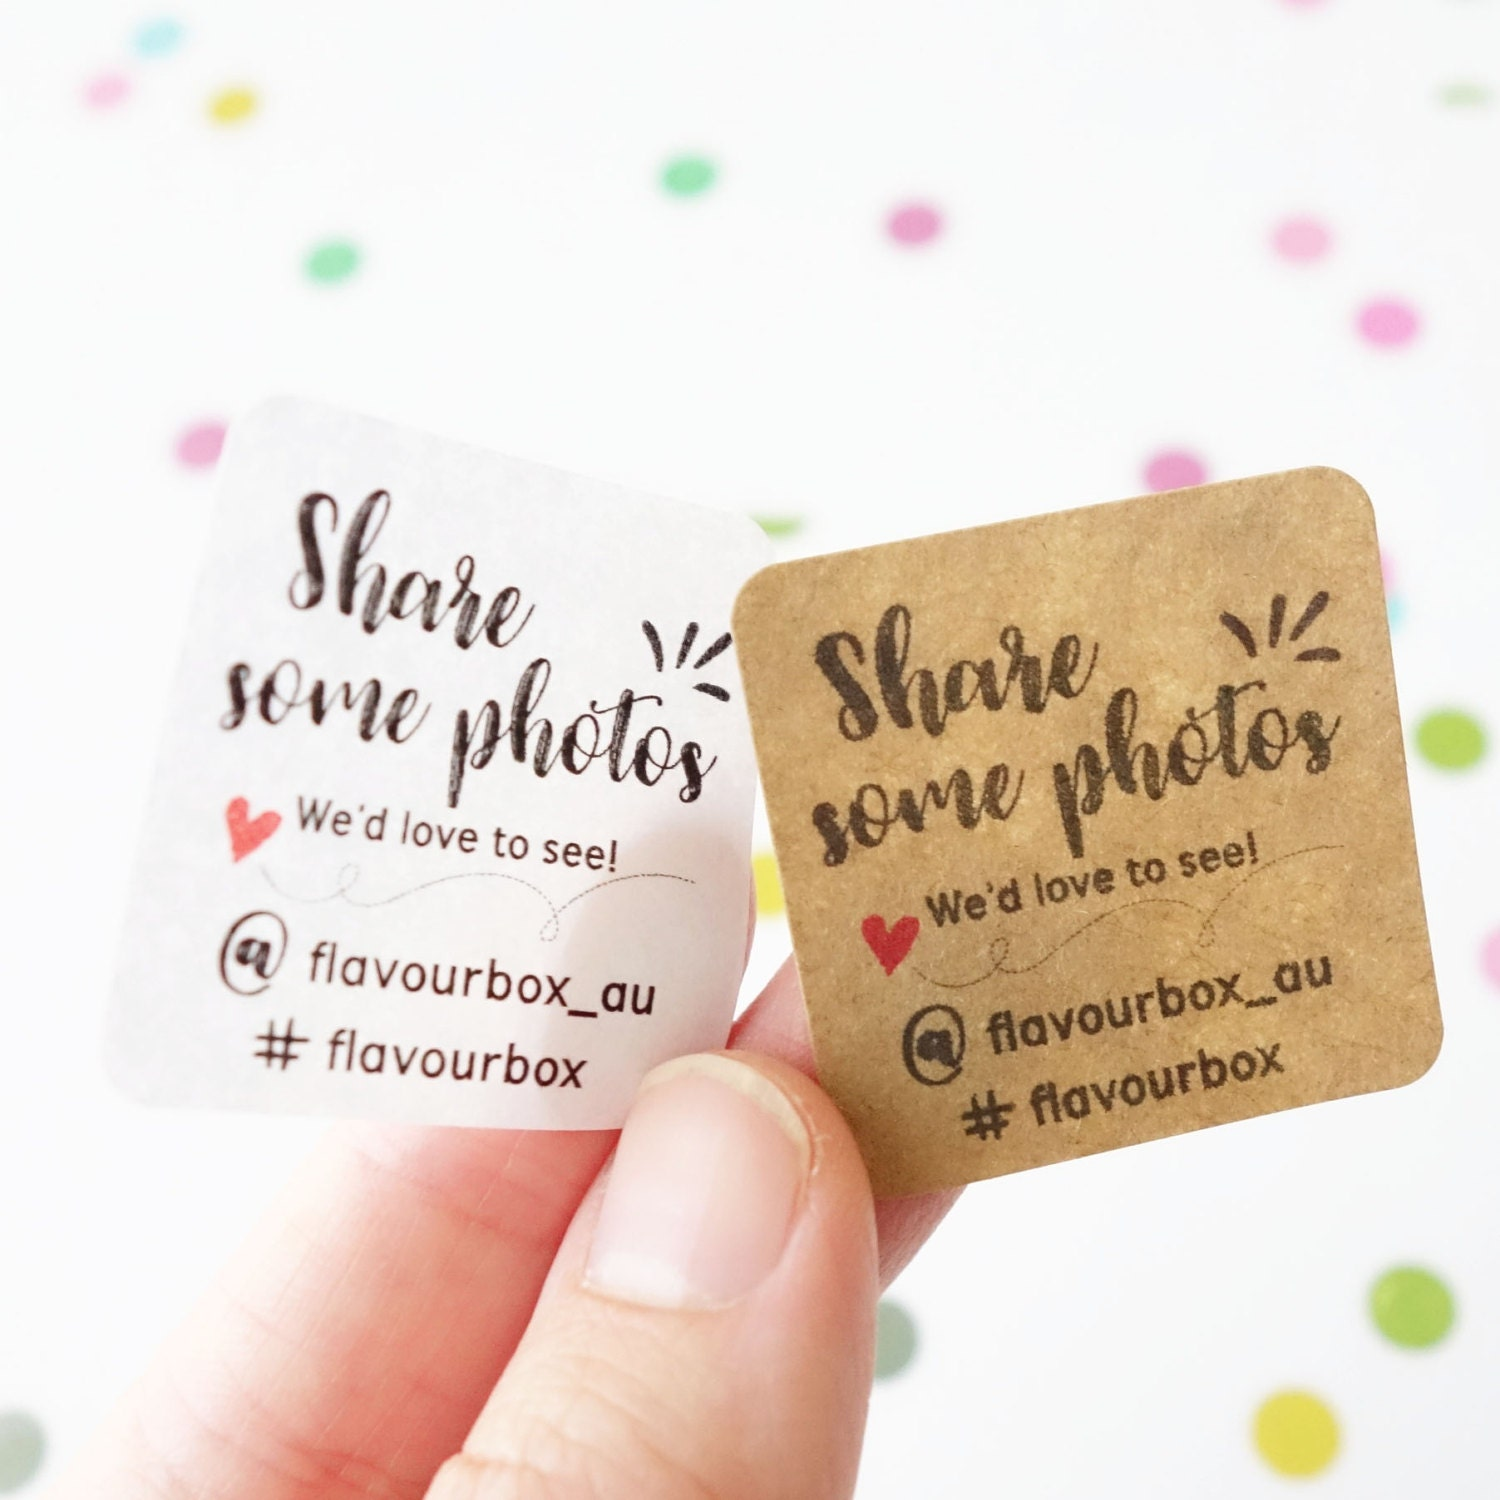 Instagram stickers custom business small biz labels product sticker etsy shop product packaging social media sticker